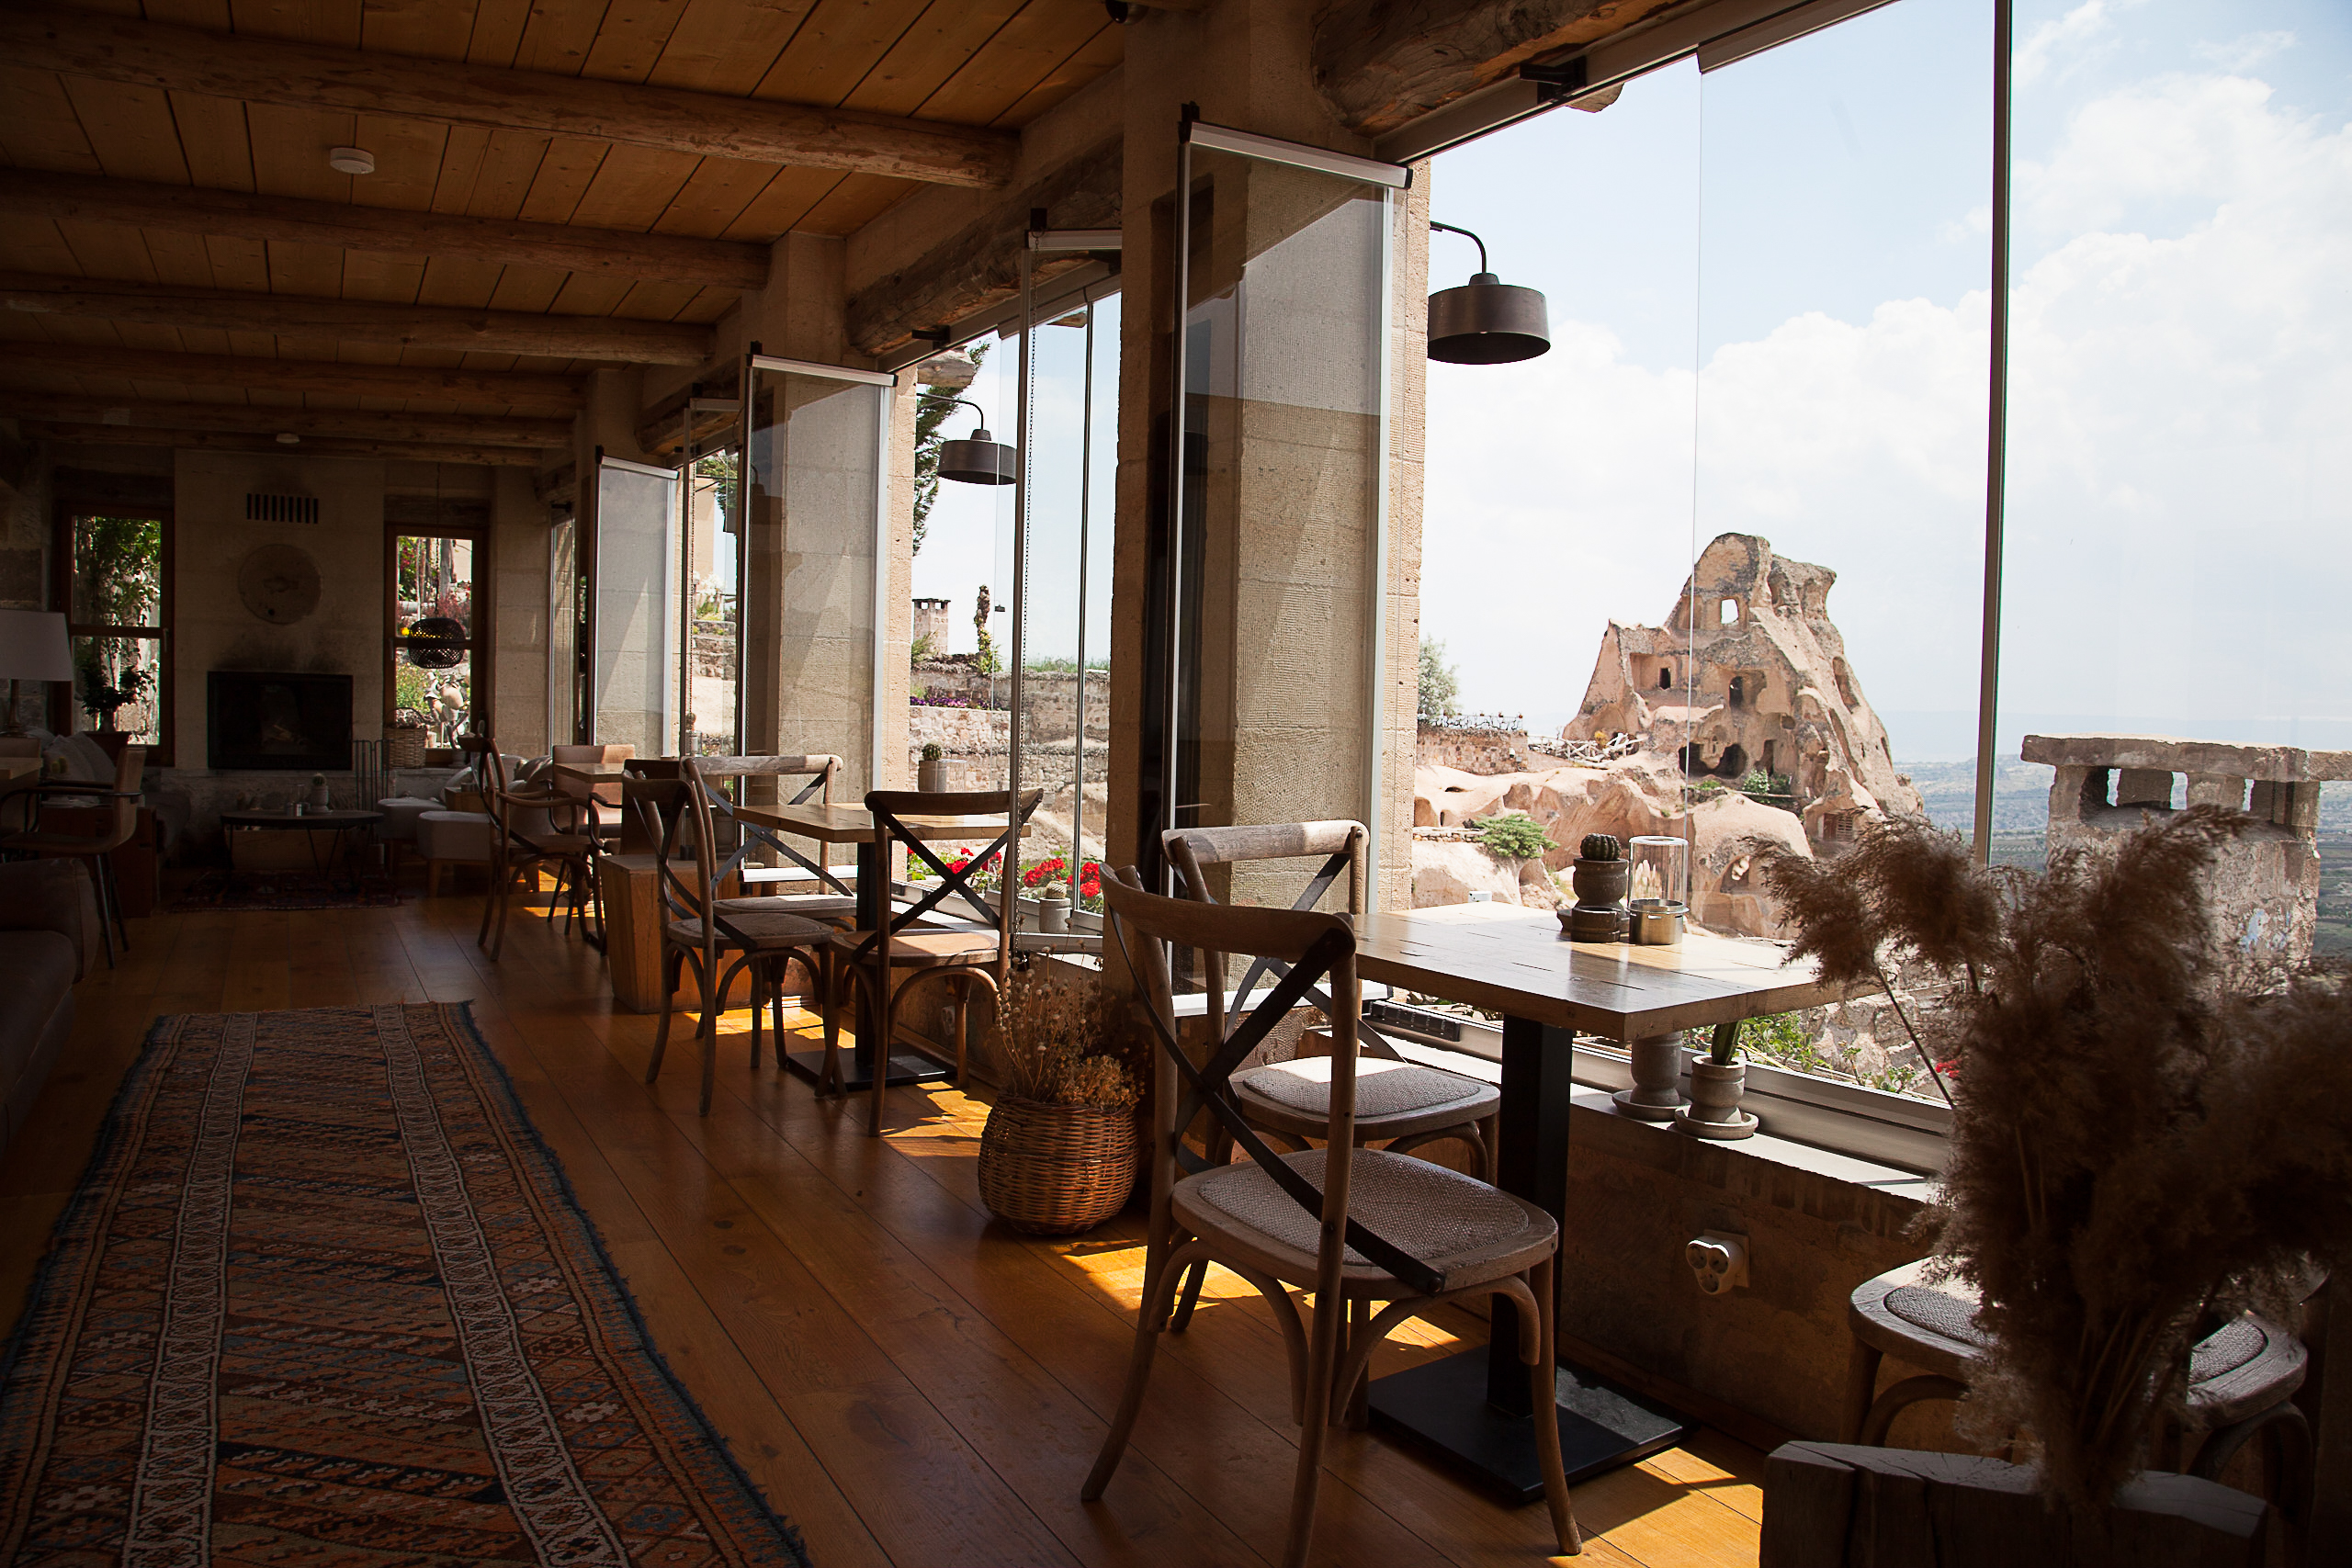 Paradise on Earth: Welcome to Cappadocia 6